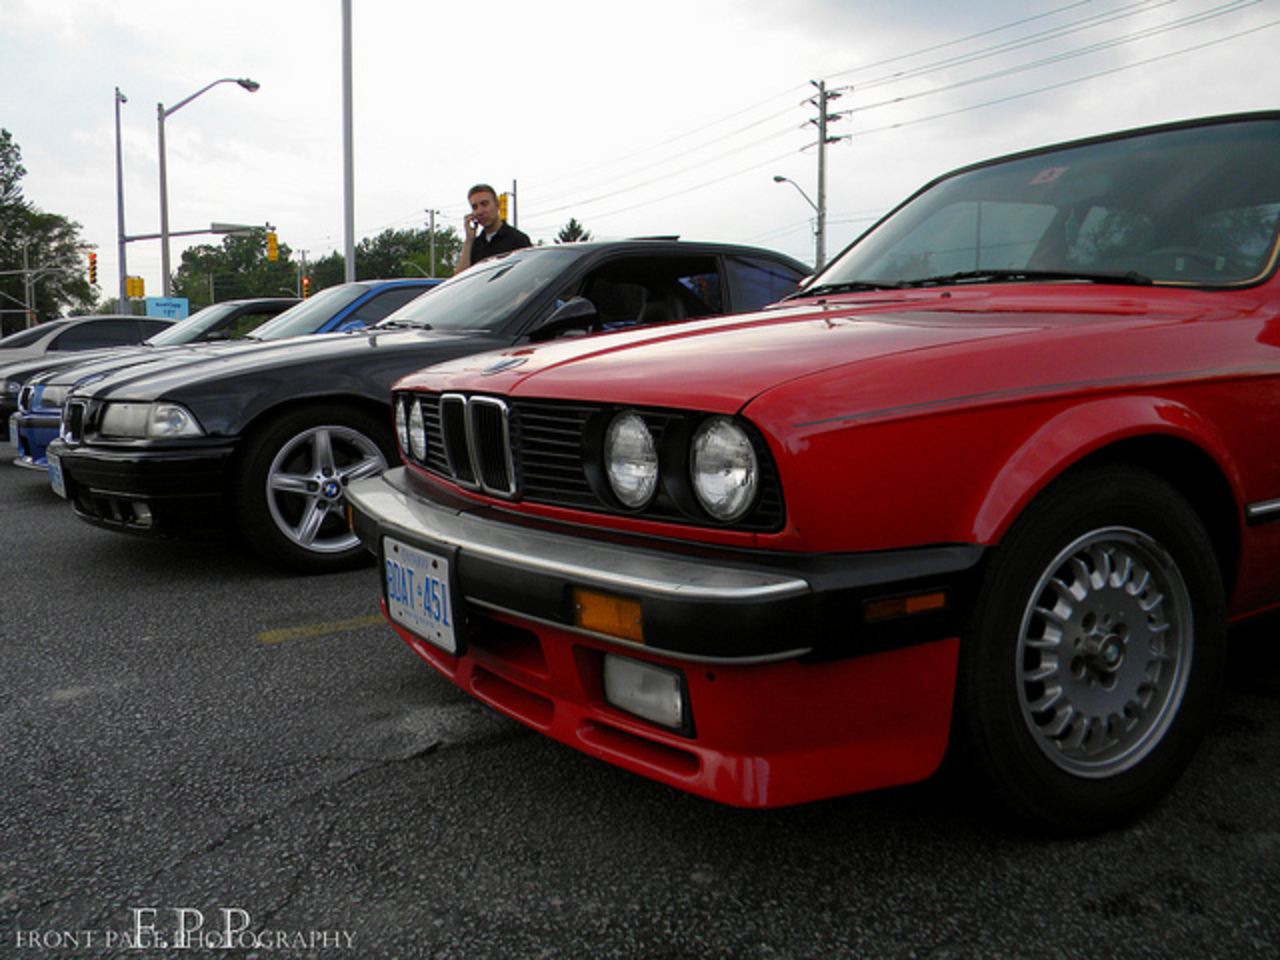 BMW E36 318is & E30 325is | Flickr - Photo Sharing!